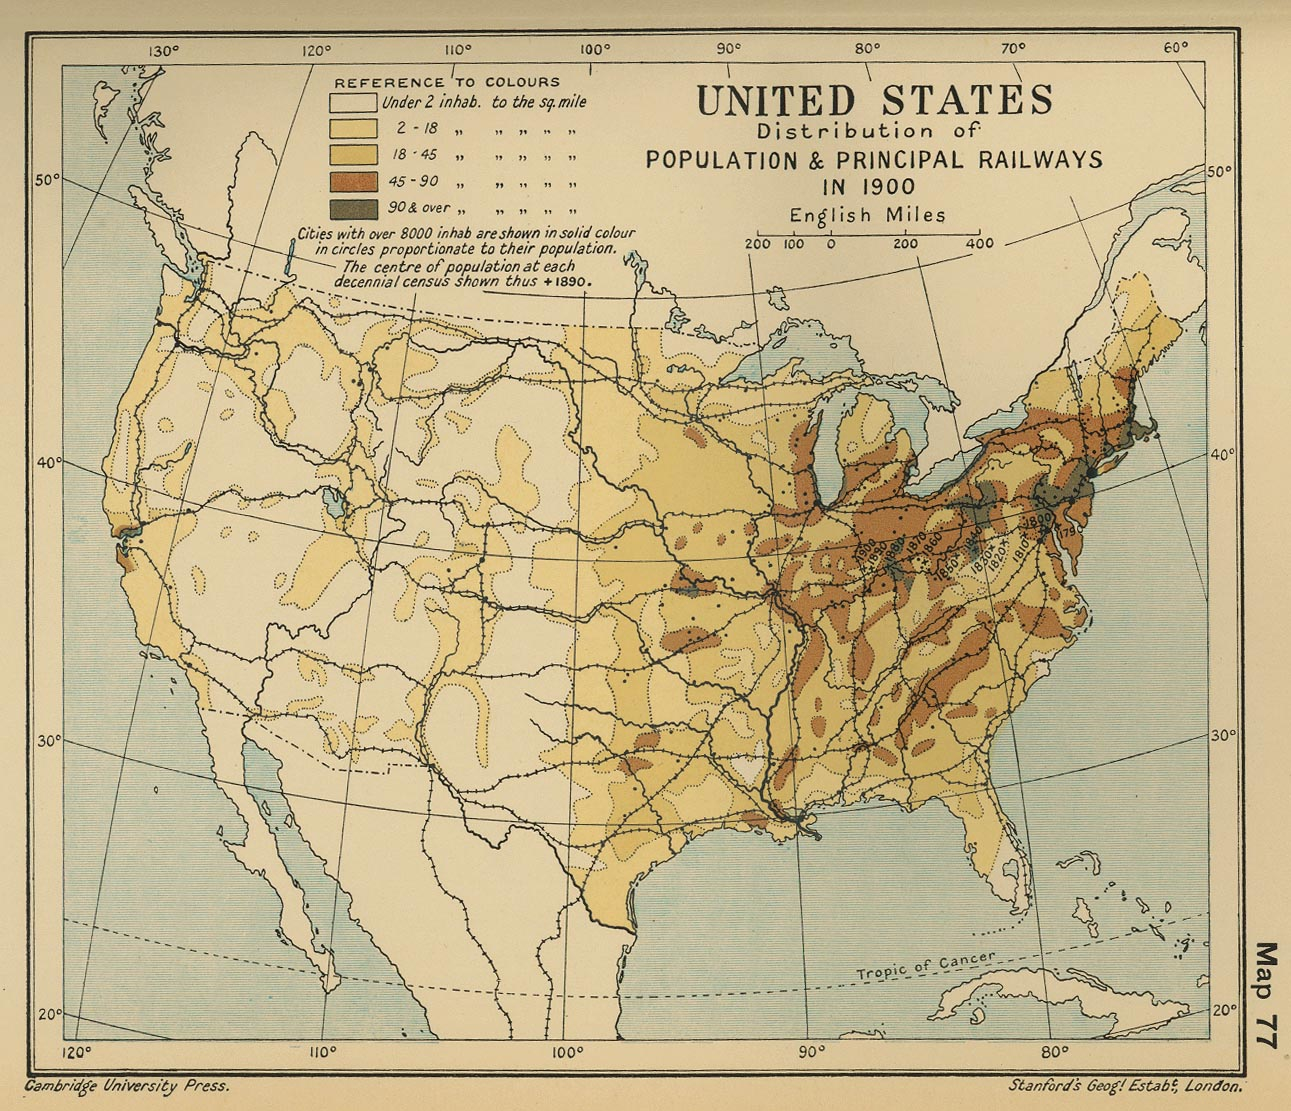 of the United States Population 1900